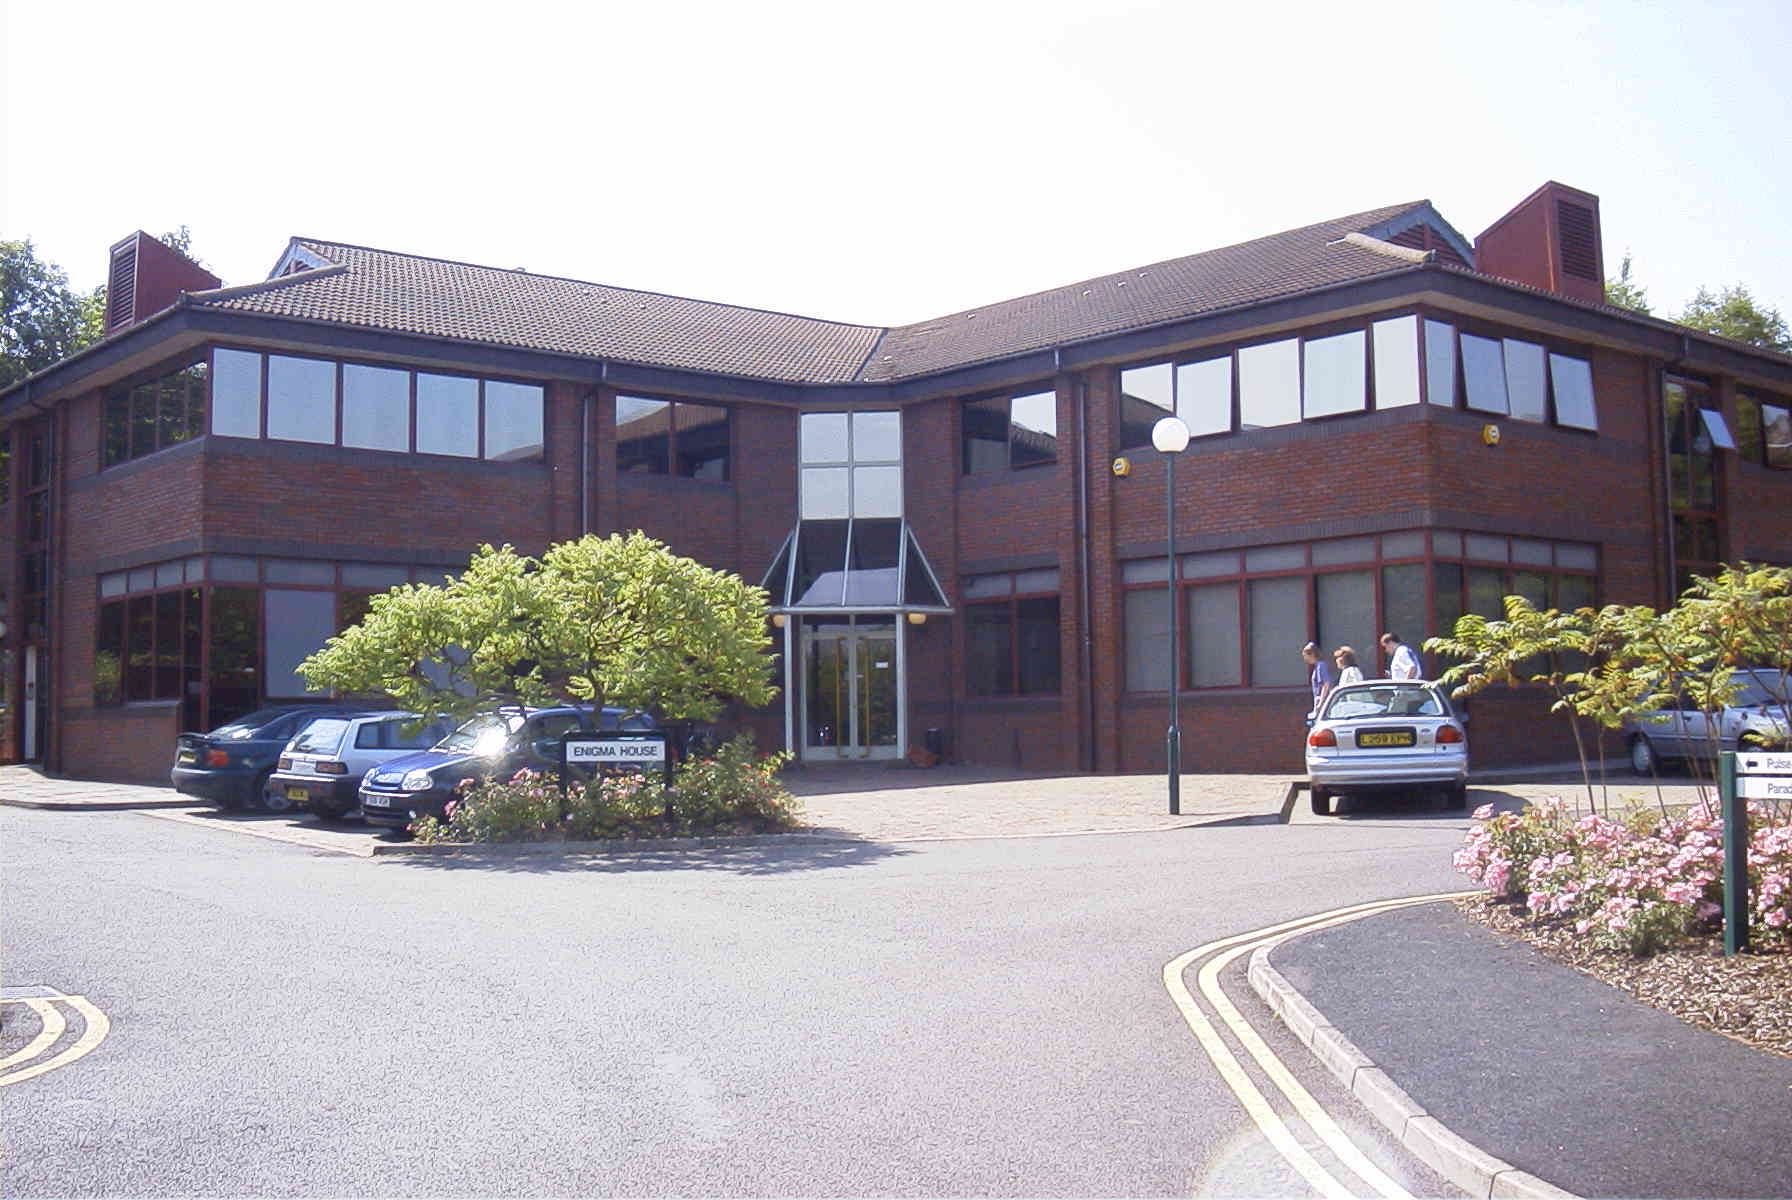 30B ALAN TURING ROAD, SURREY RESEARCH PARK, GUILDFORD